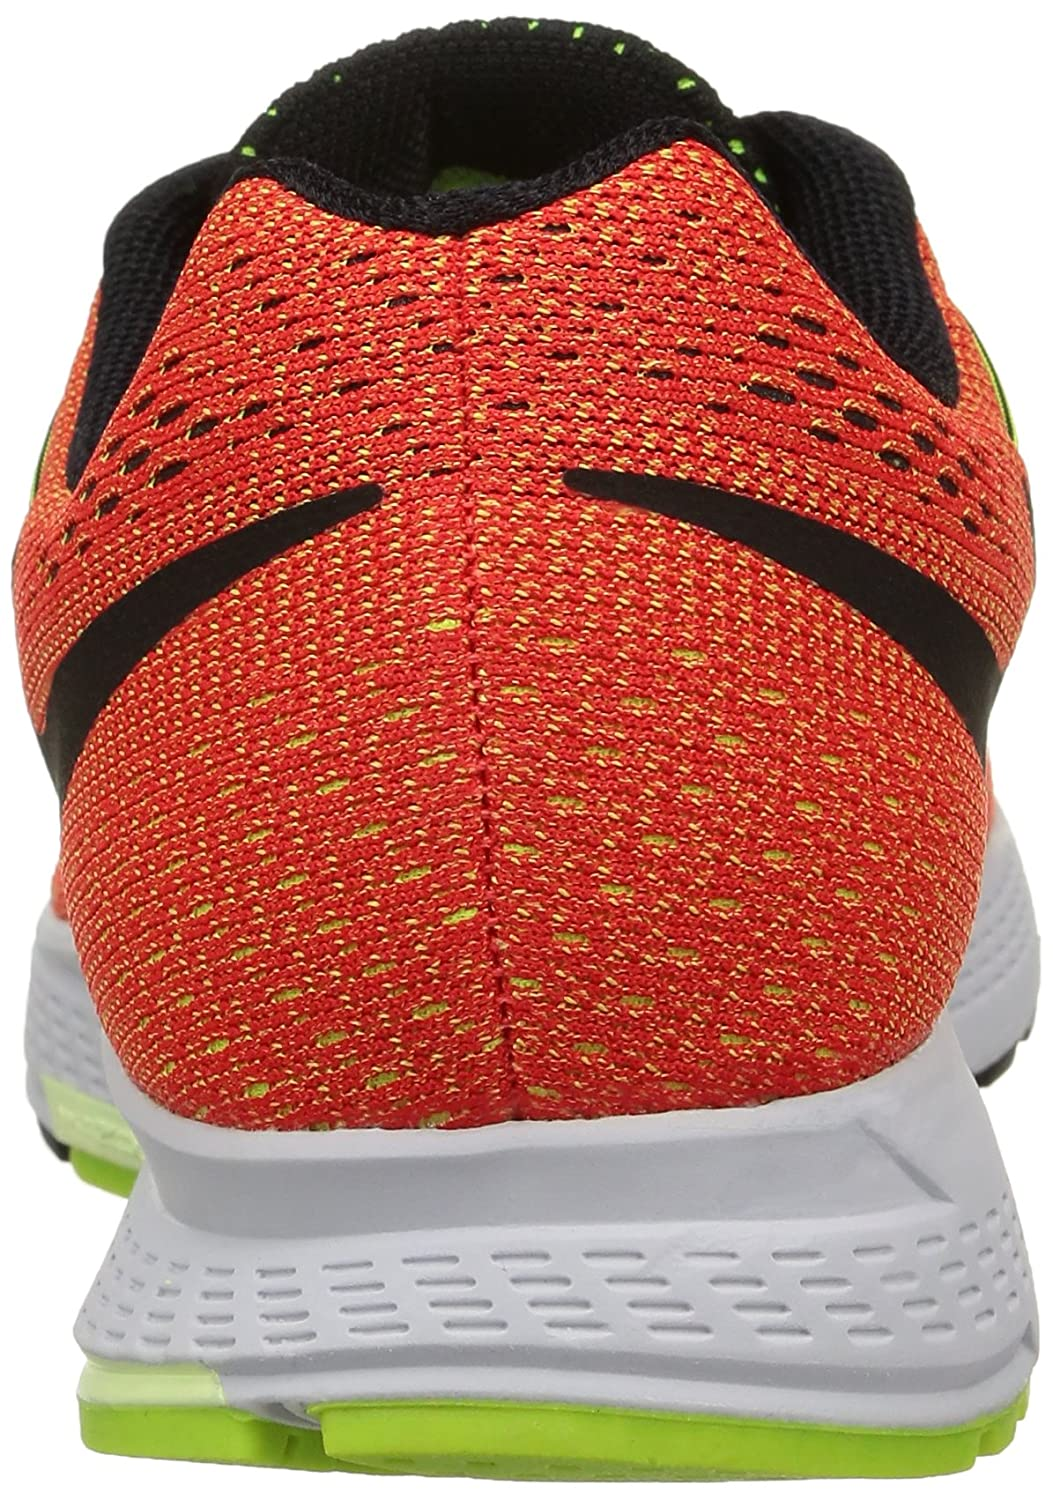 new product bc562 a9193 ... sale nike air zoom pegasus 32 mens running amazon shoes 5c54a 66abf